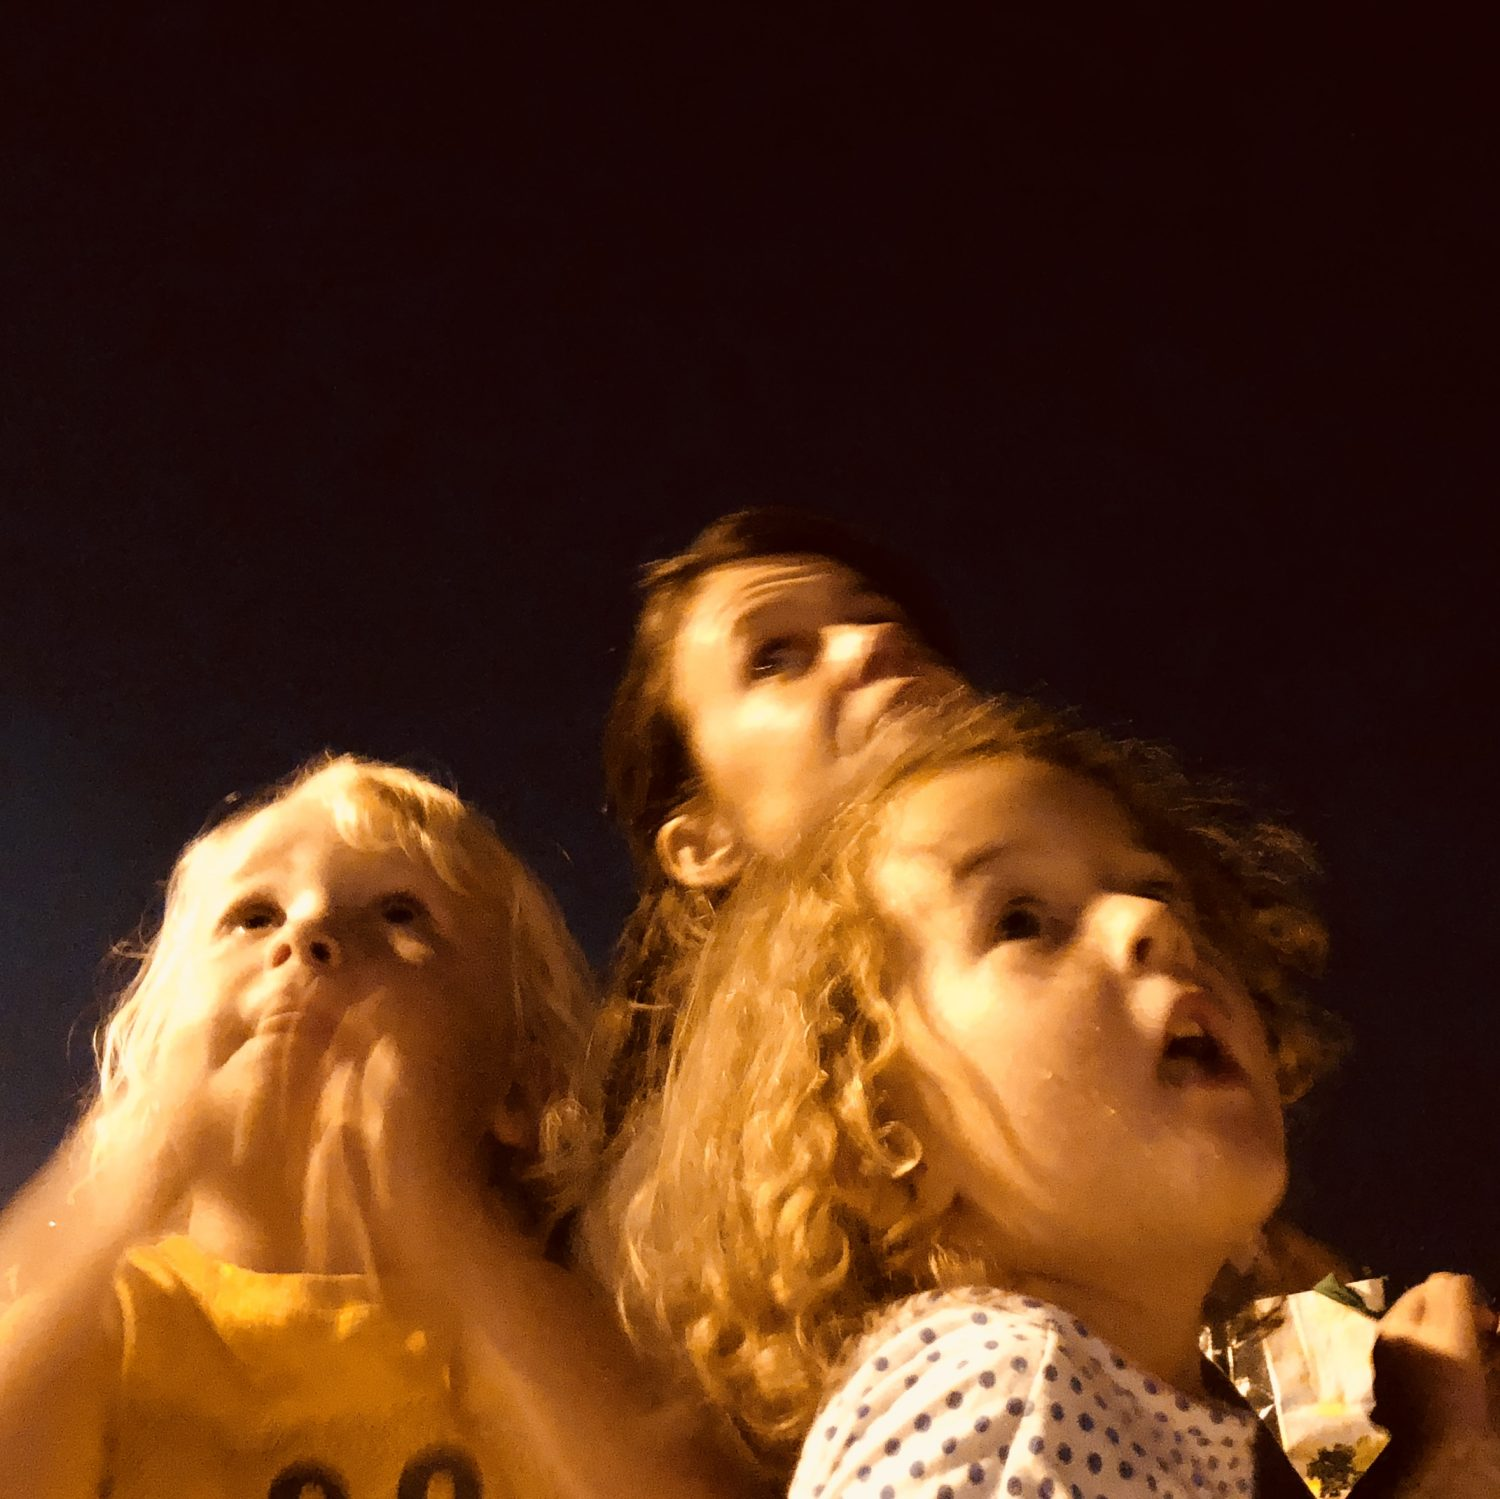 Expedition Family Happiness - San Juan, fireworks at Platja D'Aro